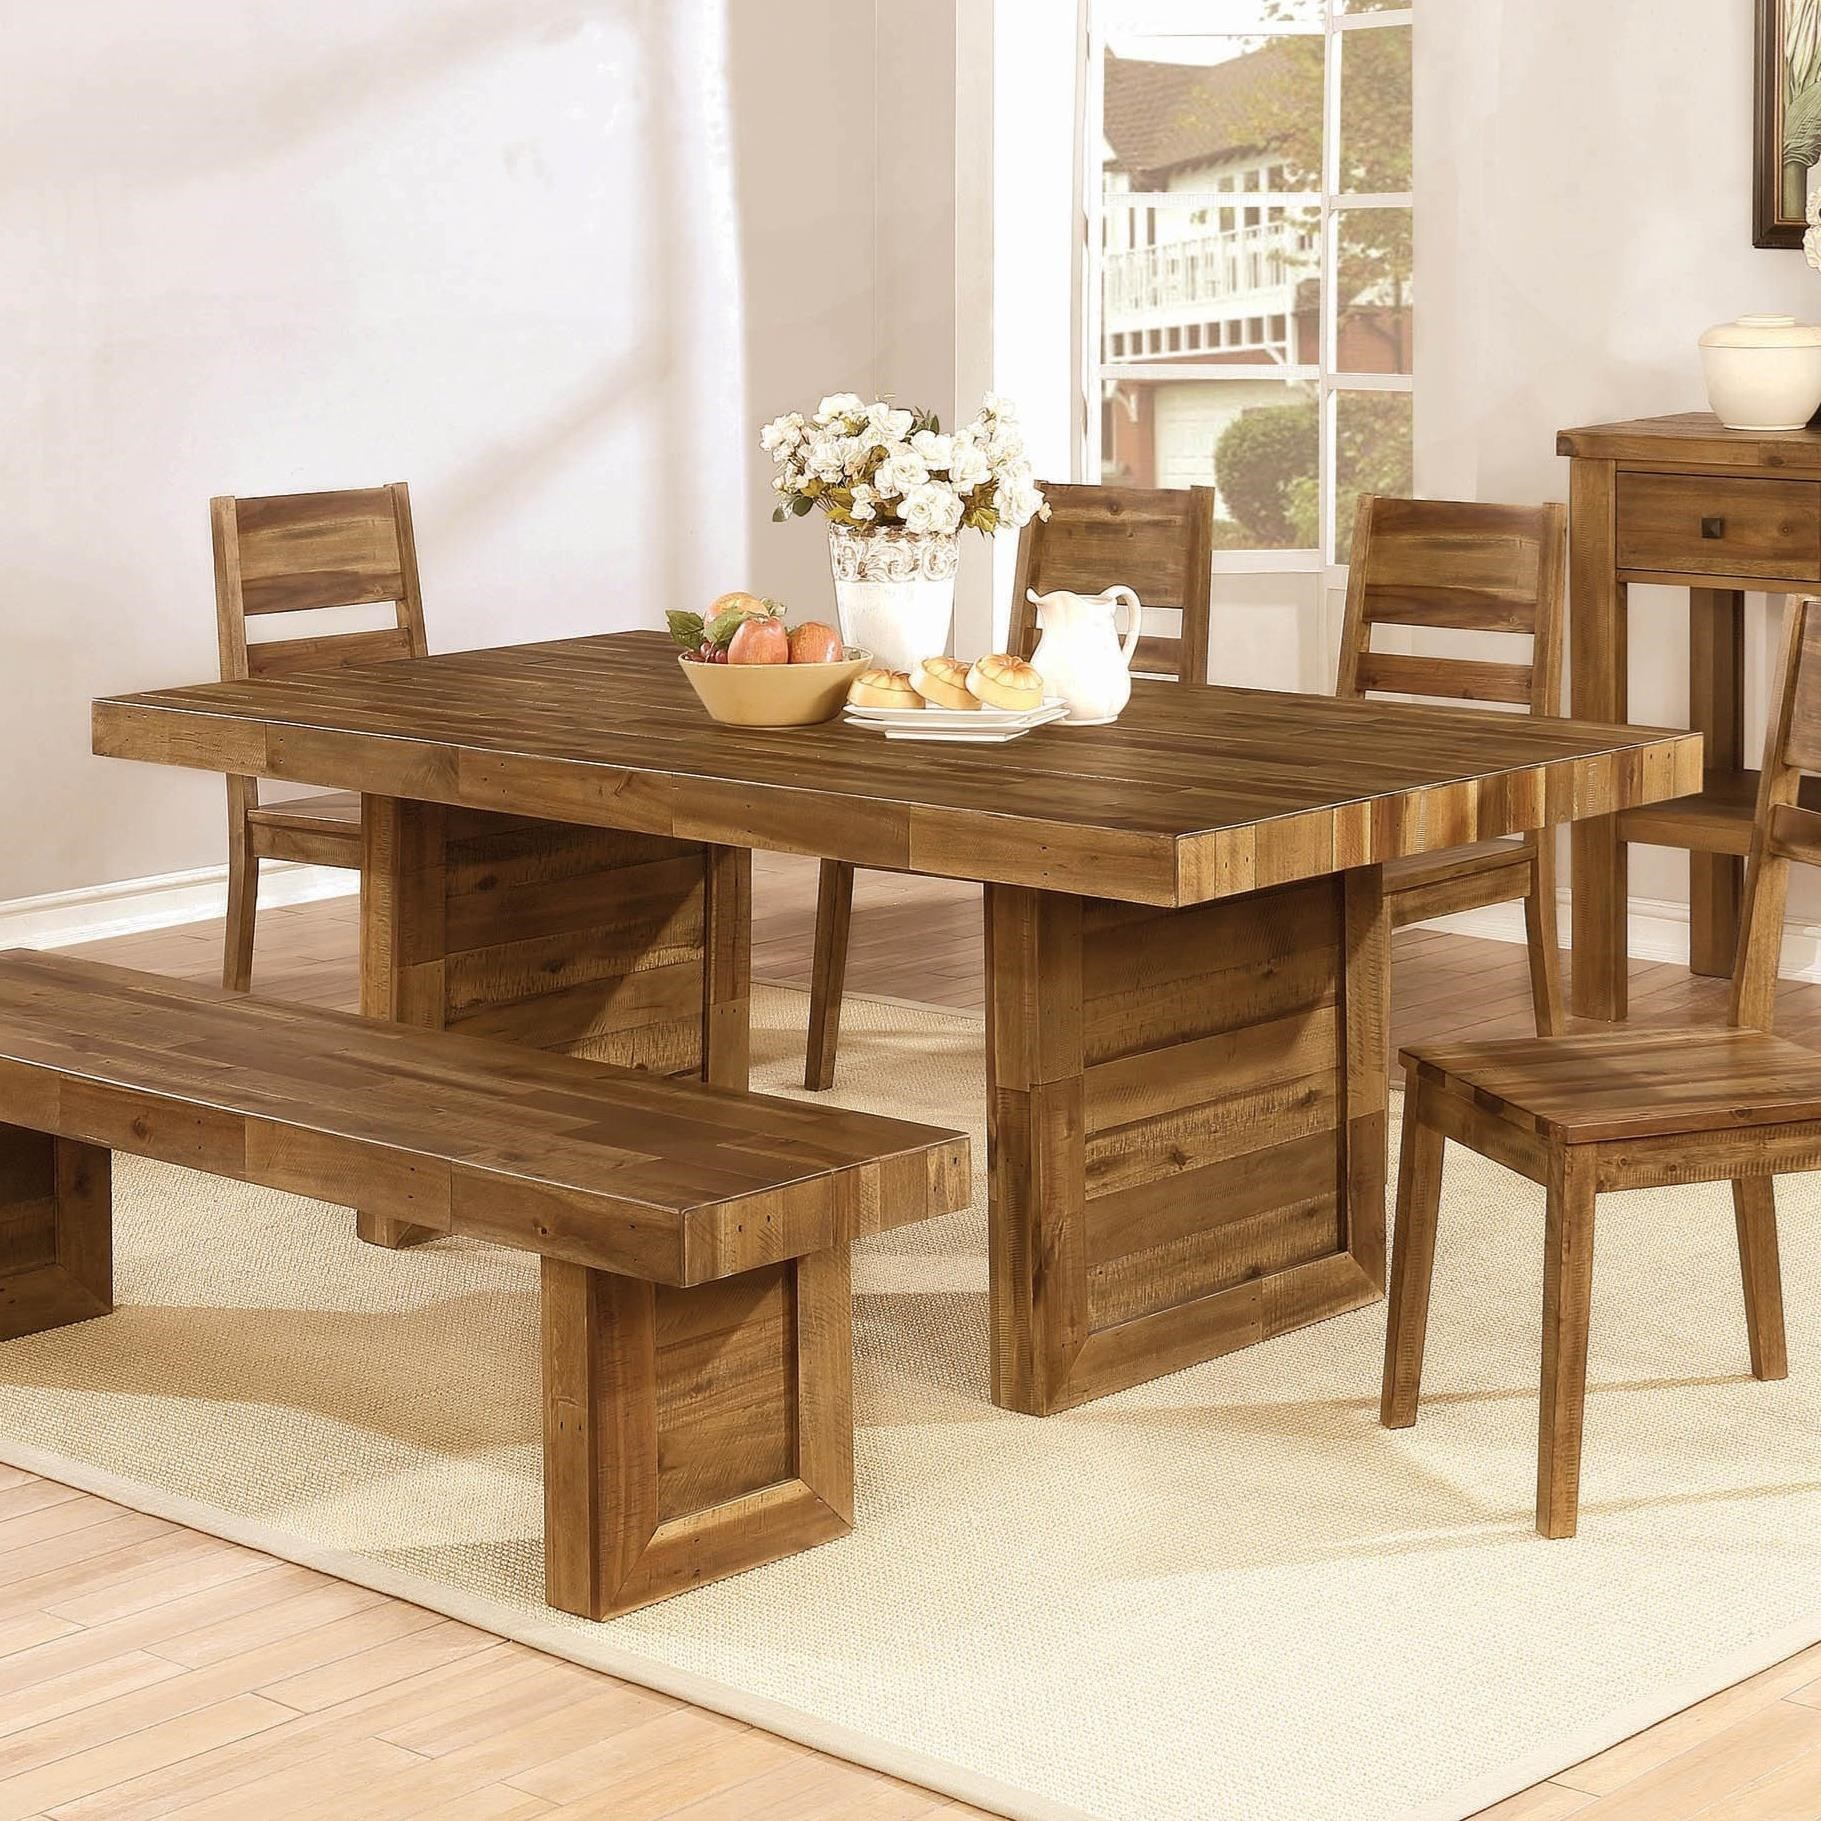 coaster tucson rustic dining table rife 39 s home furniture dining tables. Black Bedroom Furniture Sets. Home Design Ideas